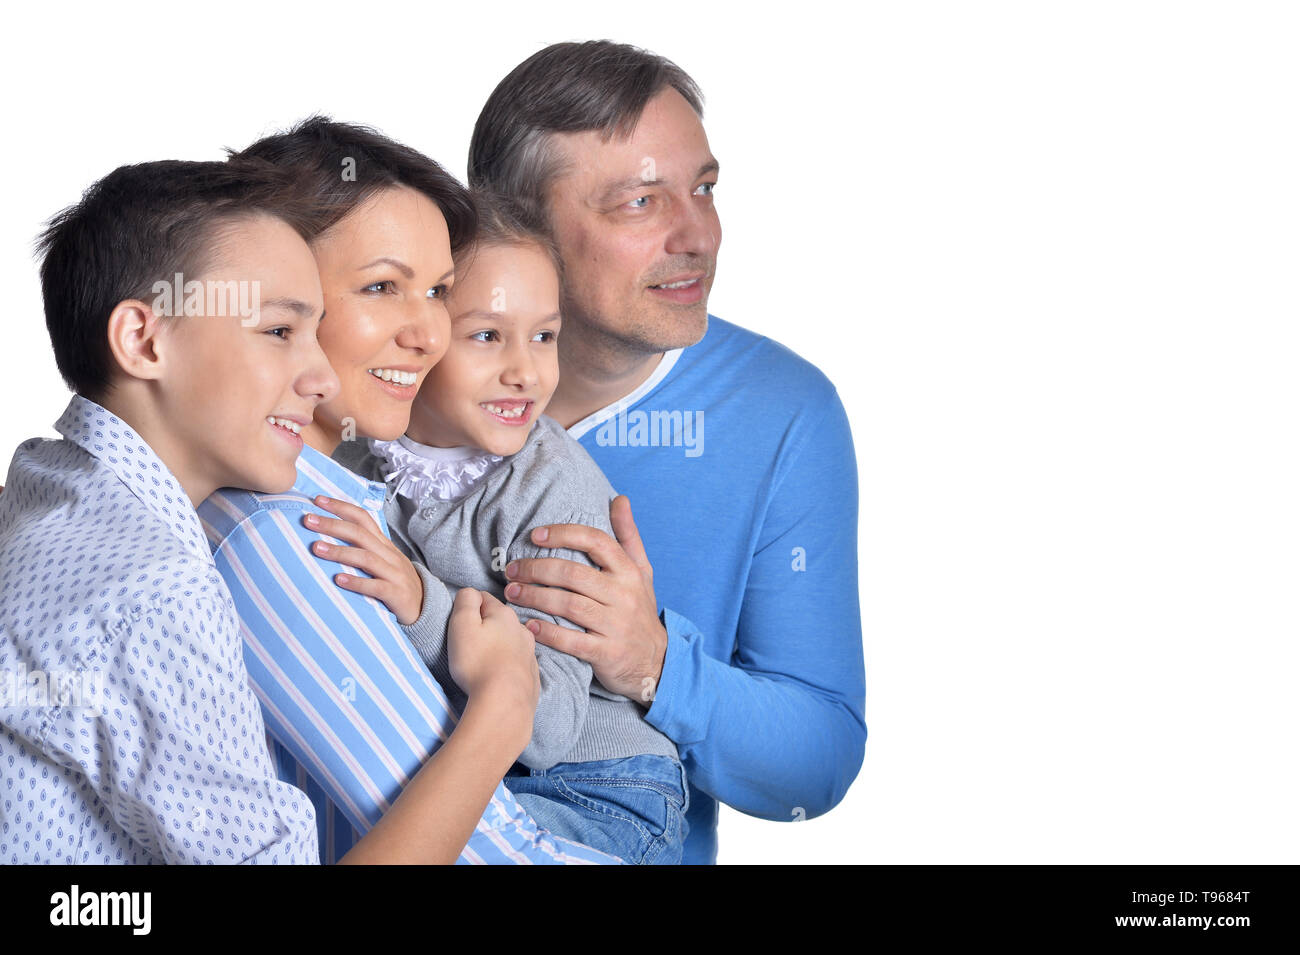 Happy smiling family of four posing together on white background - Stock Image